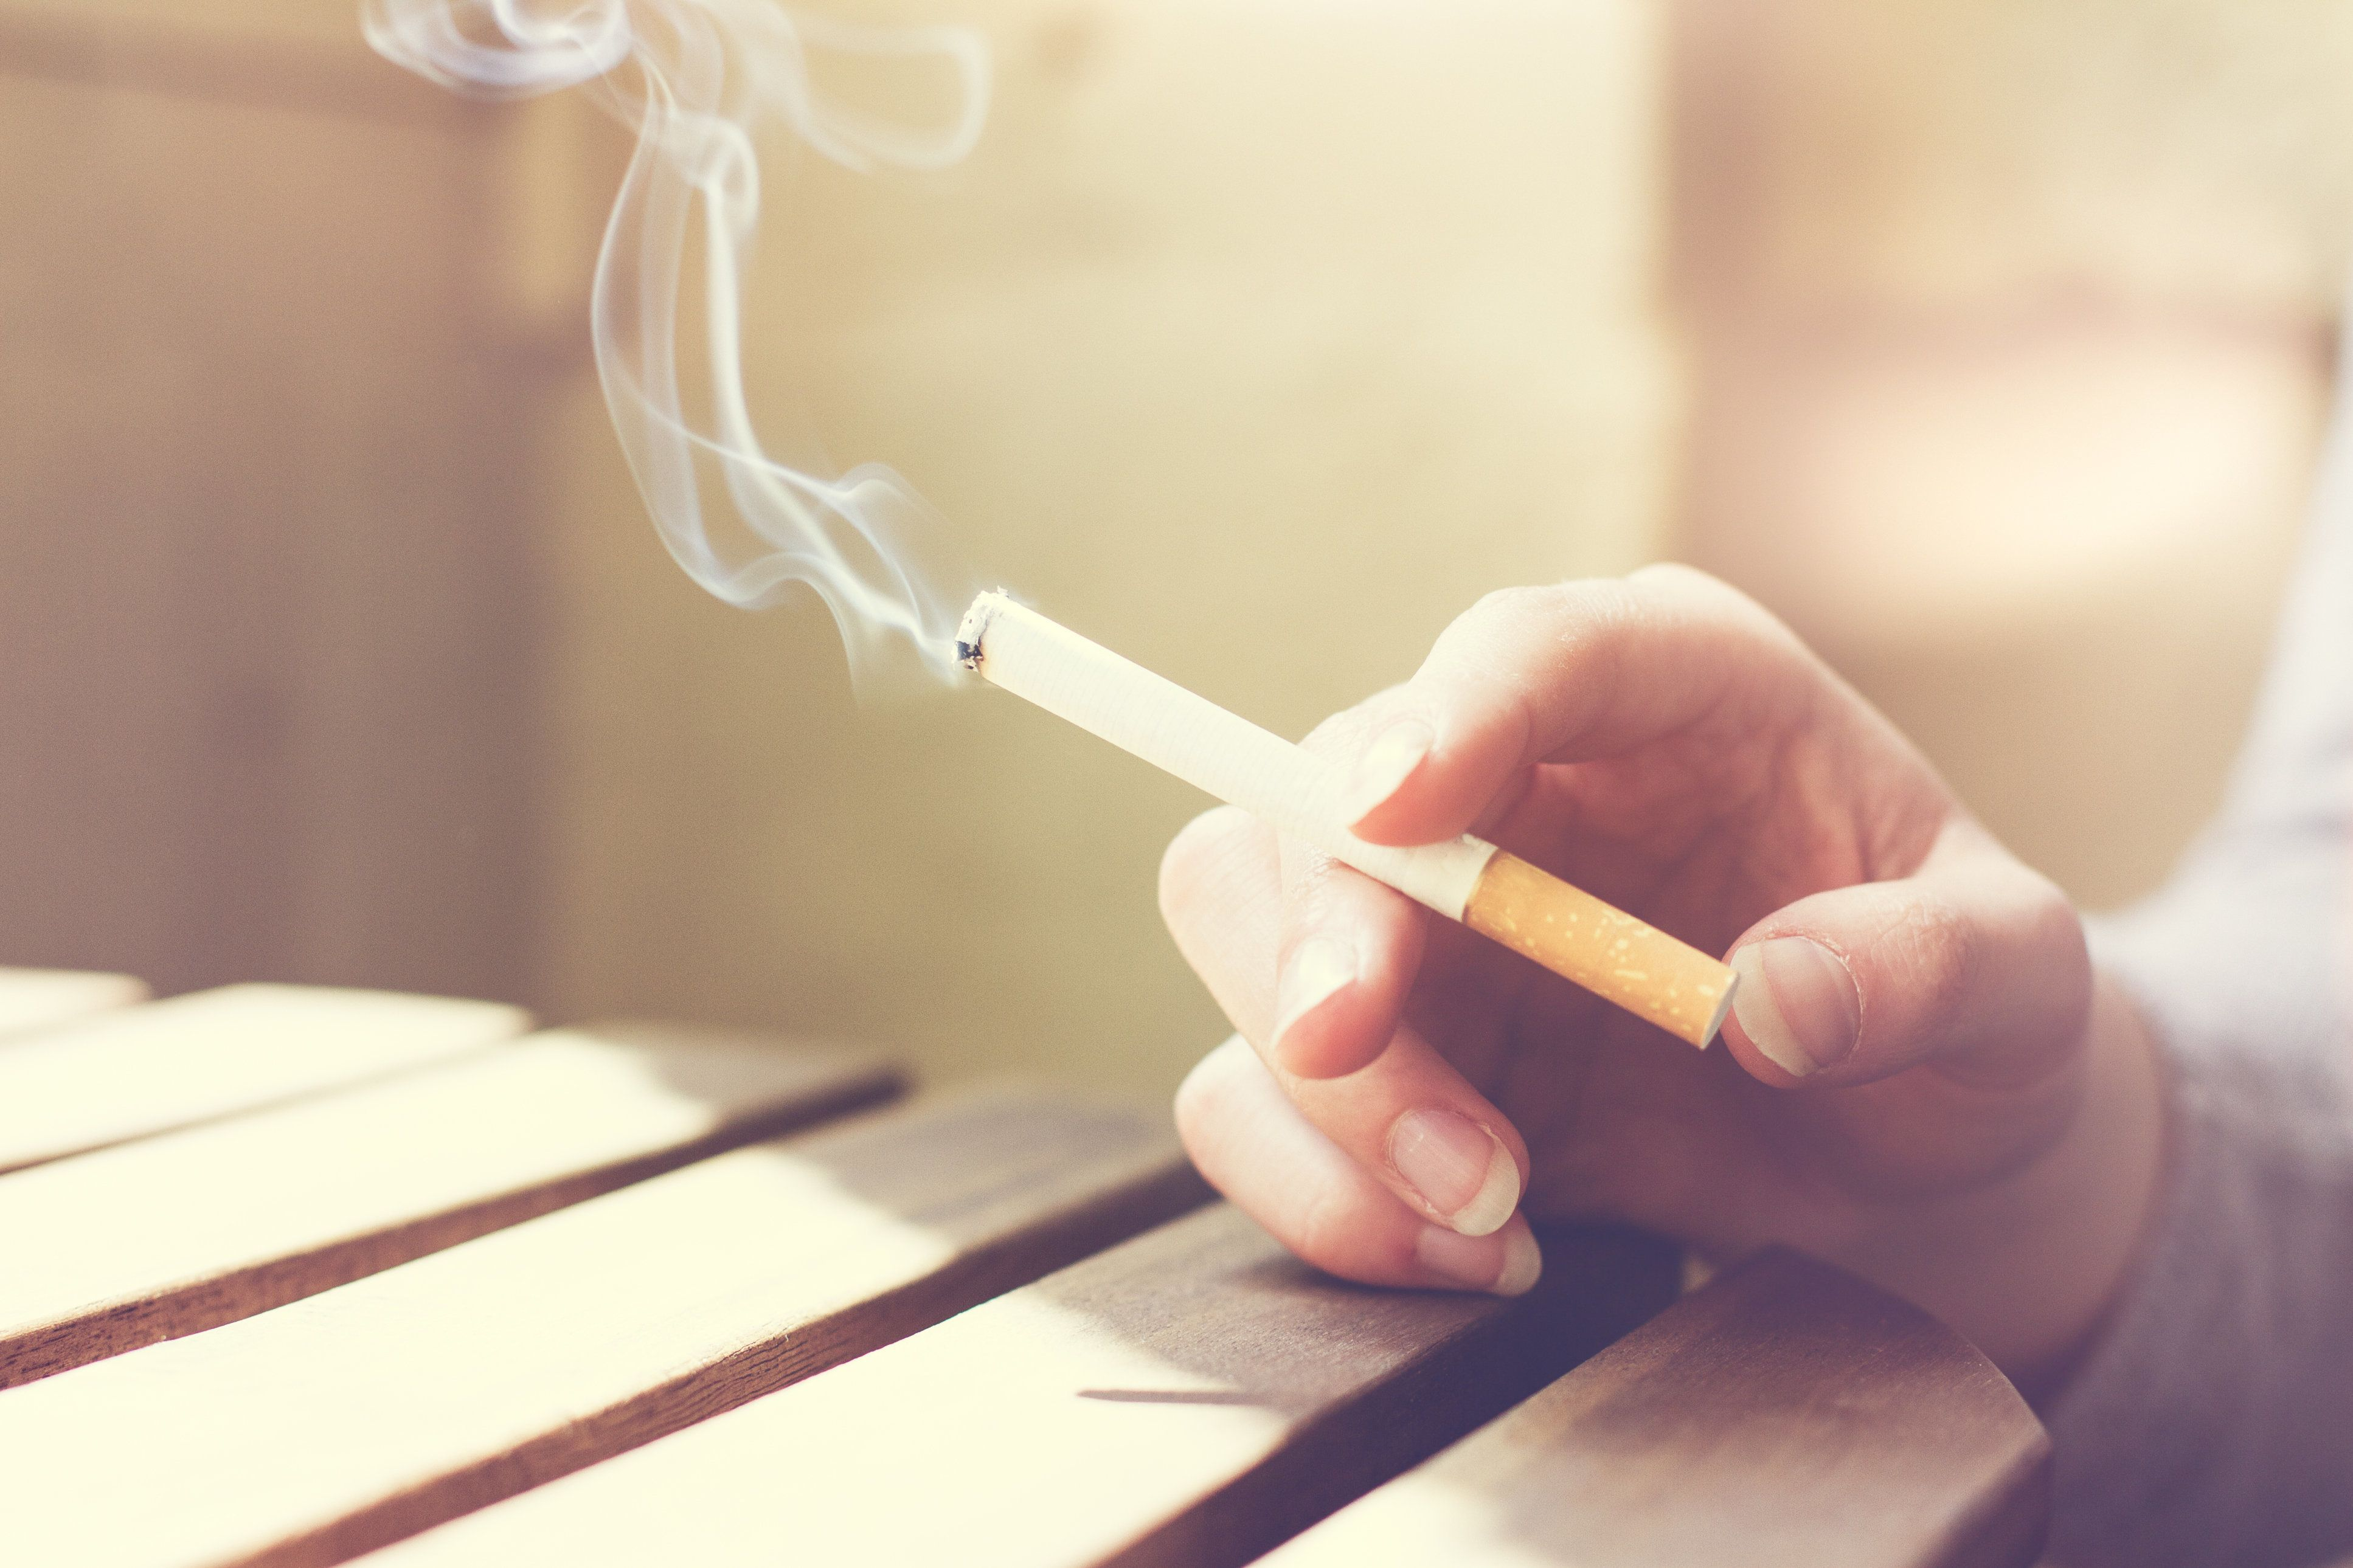 Woman smoker smoking a filter tip cigarette with her hand resting on a slatted wooden table with copy space, close up view